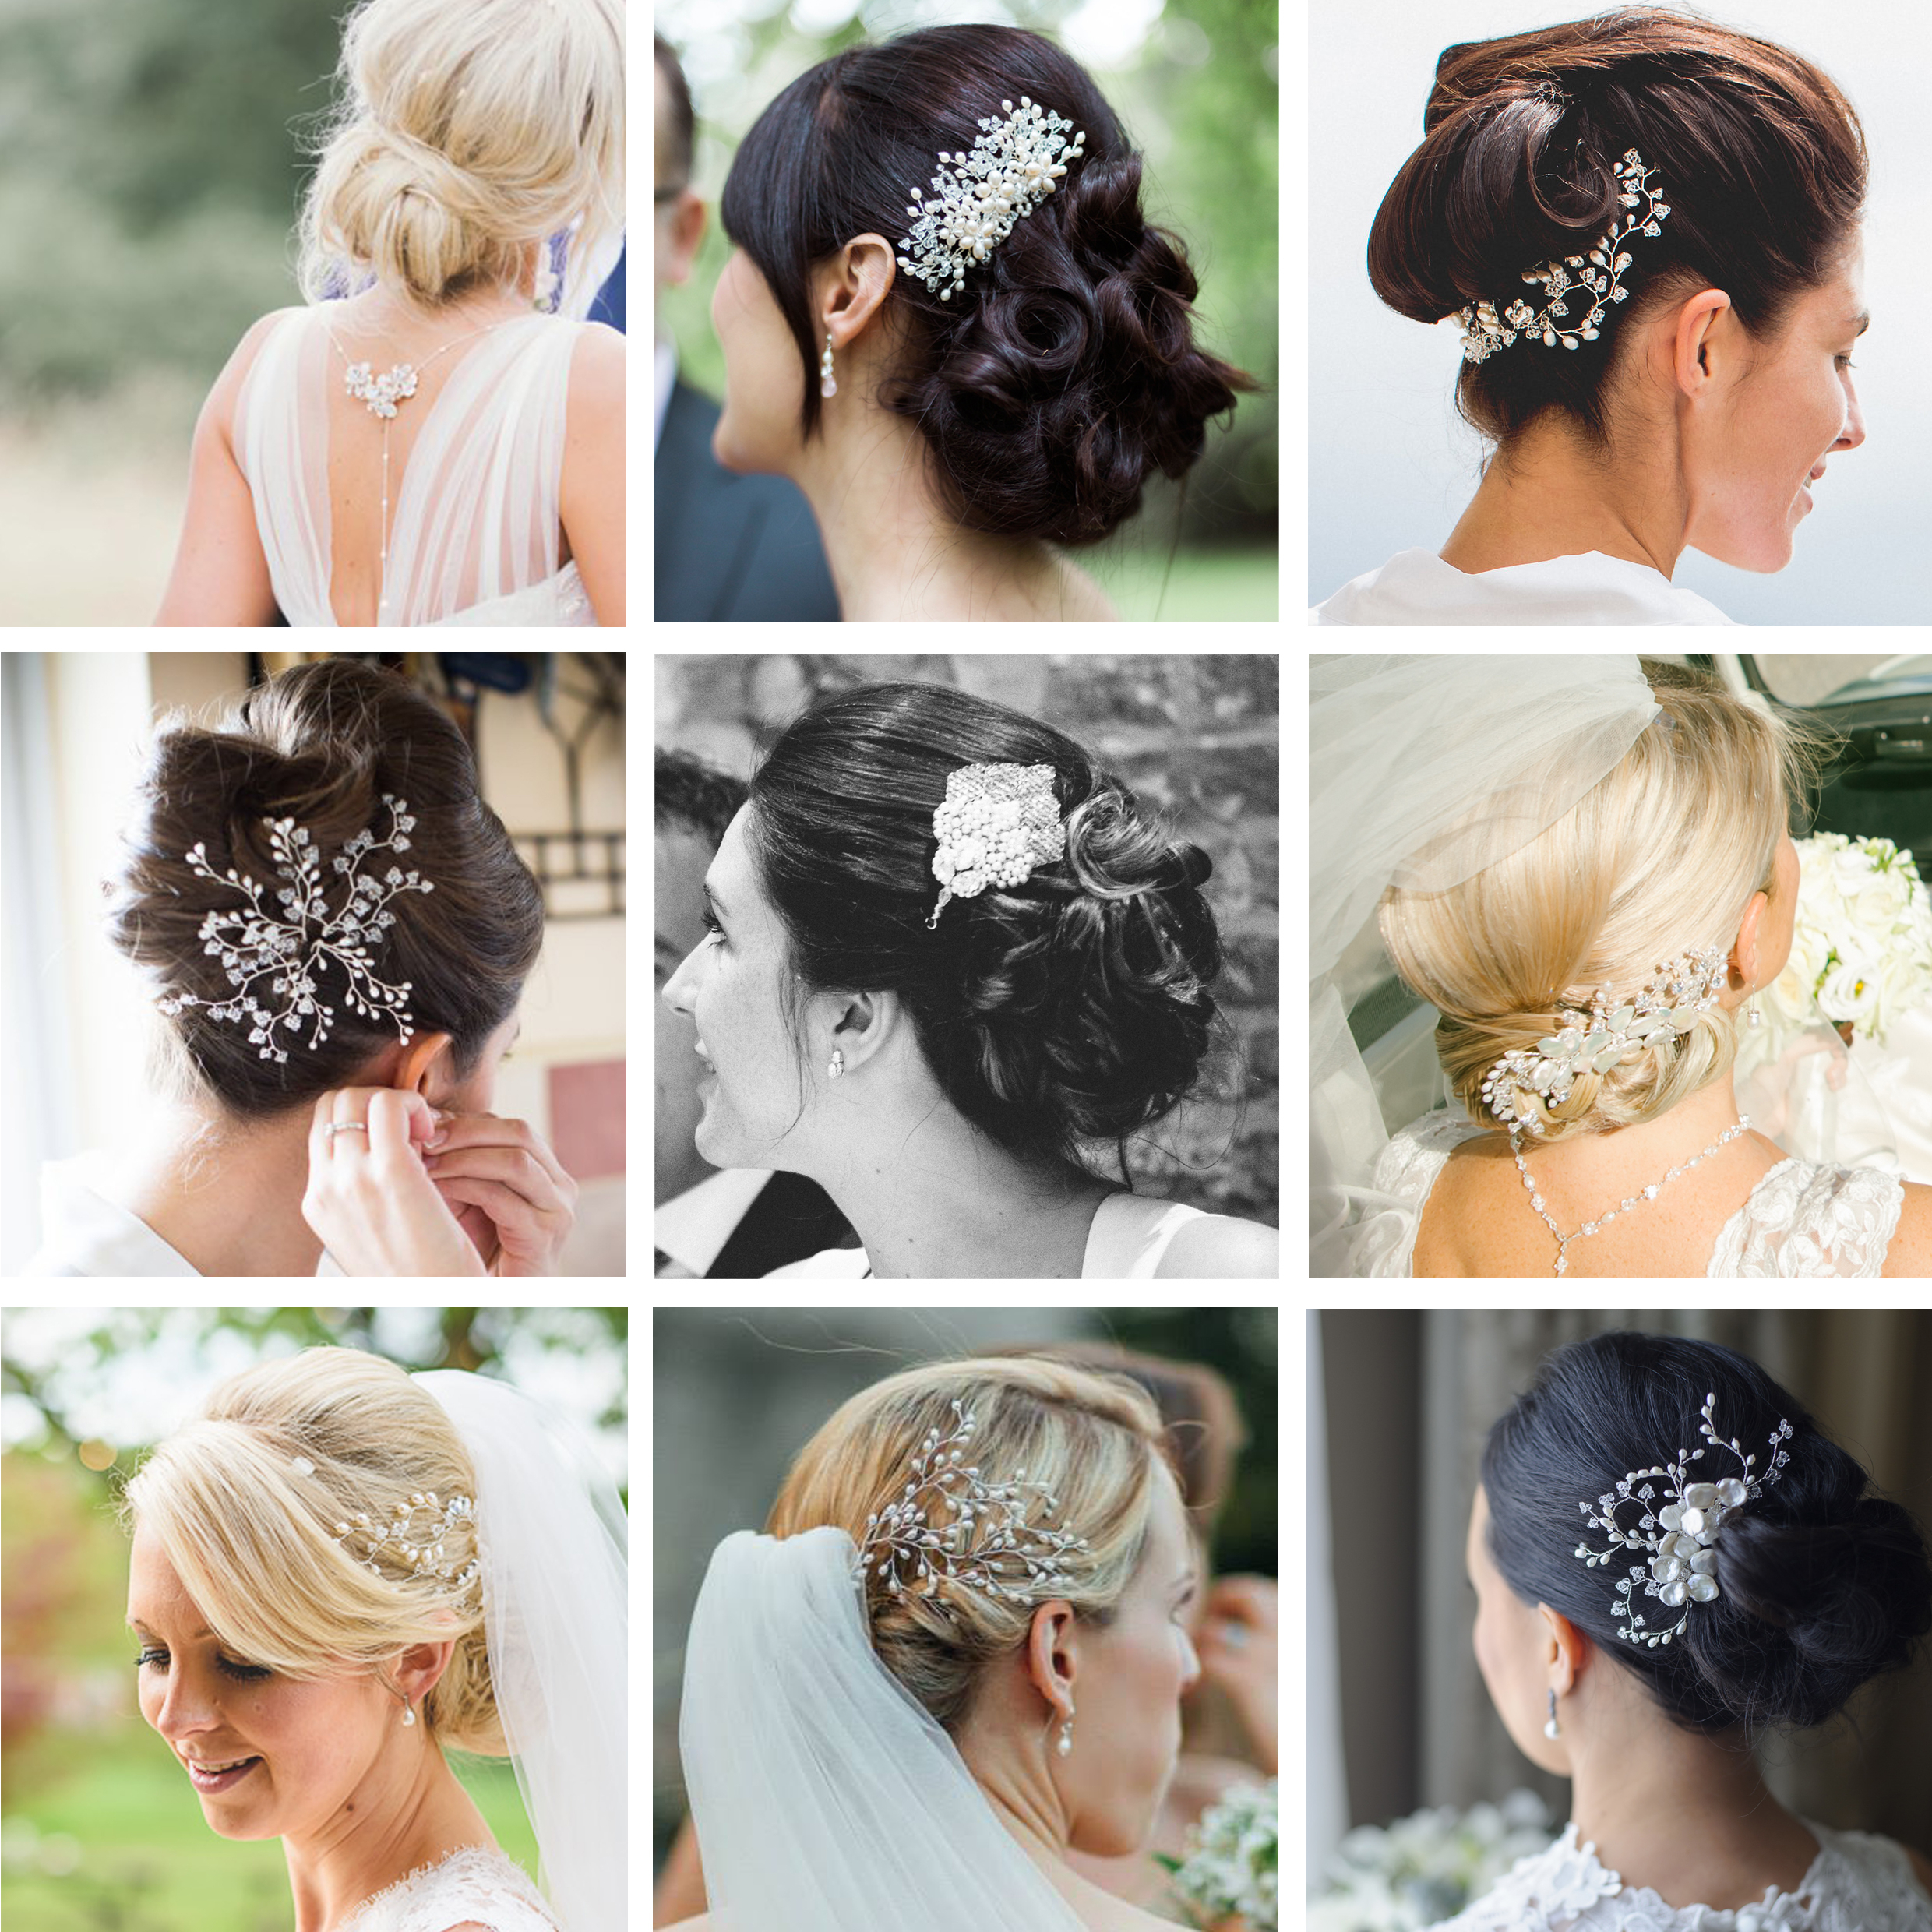 Favorite Bridal Chignon Hairstyles With Headband And Veil Within Wedding Bun Hairstyles – Hair Accessories Blog (View 9 of 20)